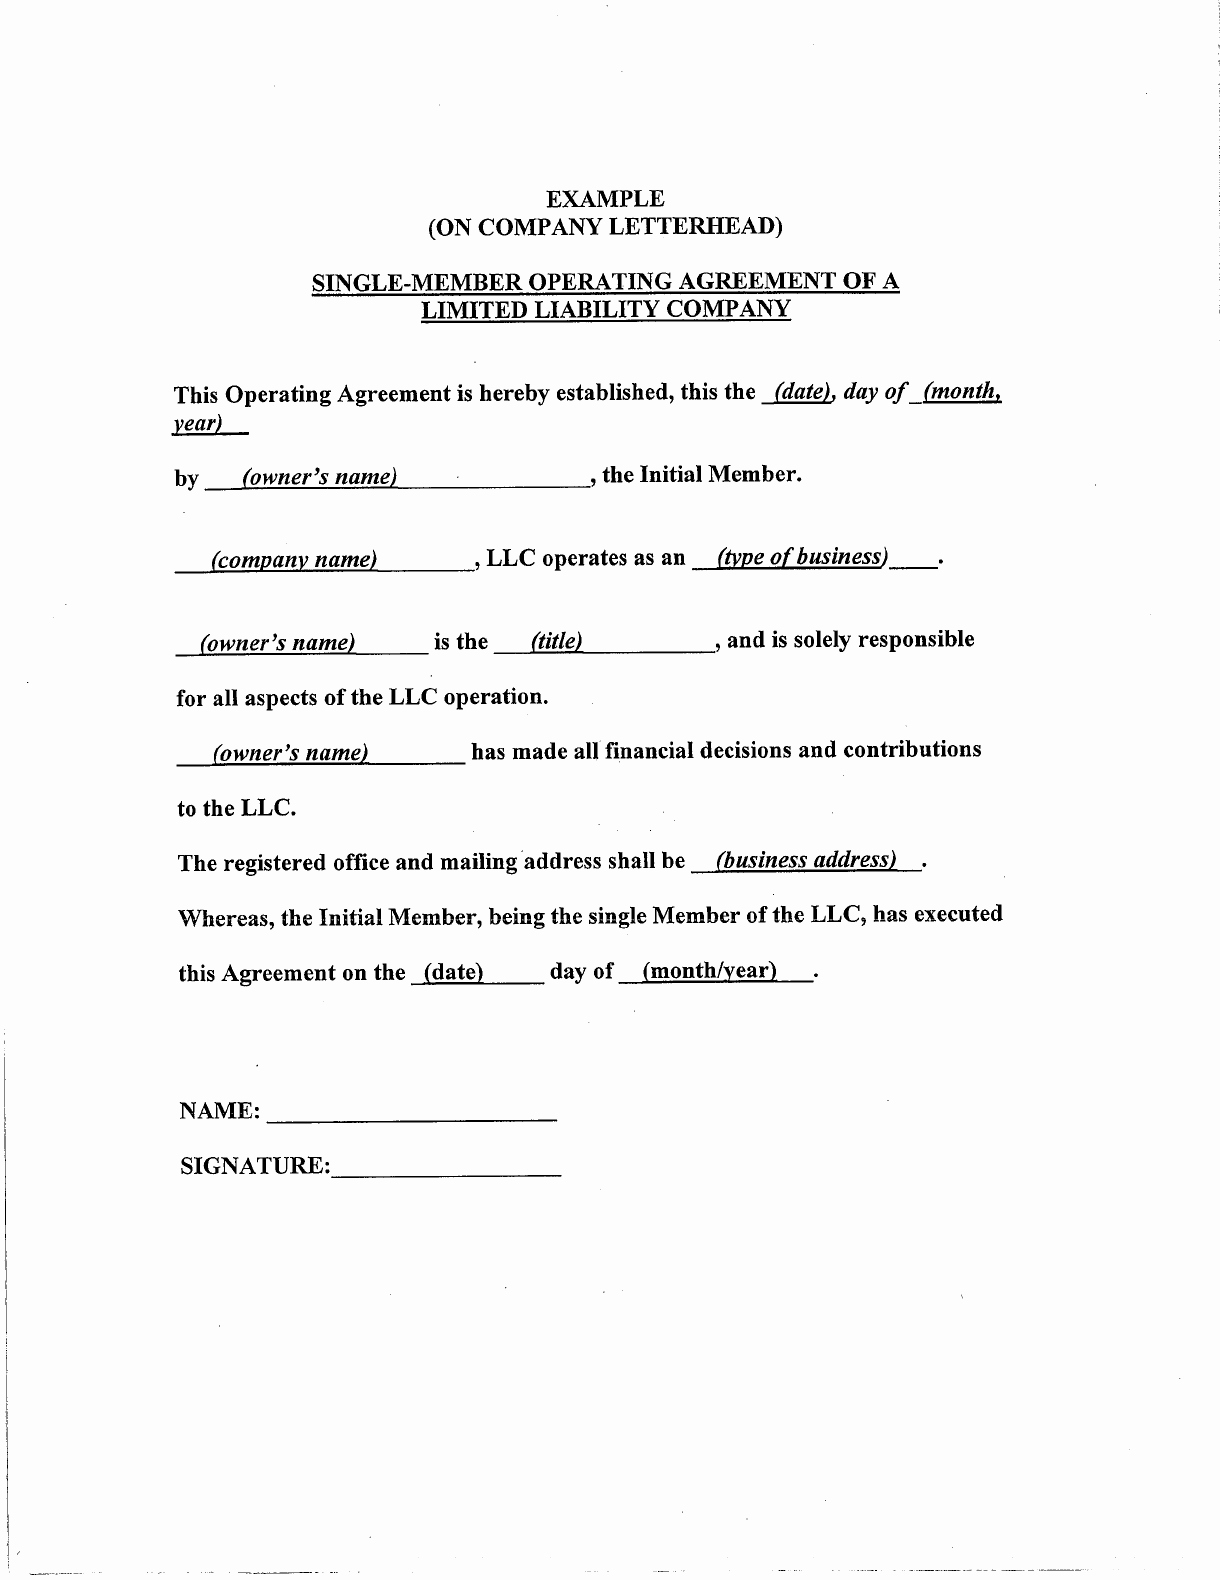 Simple Llc Operating Agreement Awesome Simple Llc Operating Agreement Template Edit Fill Sign